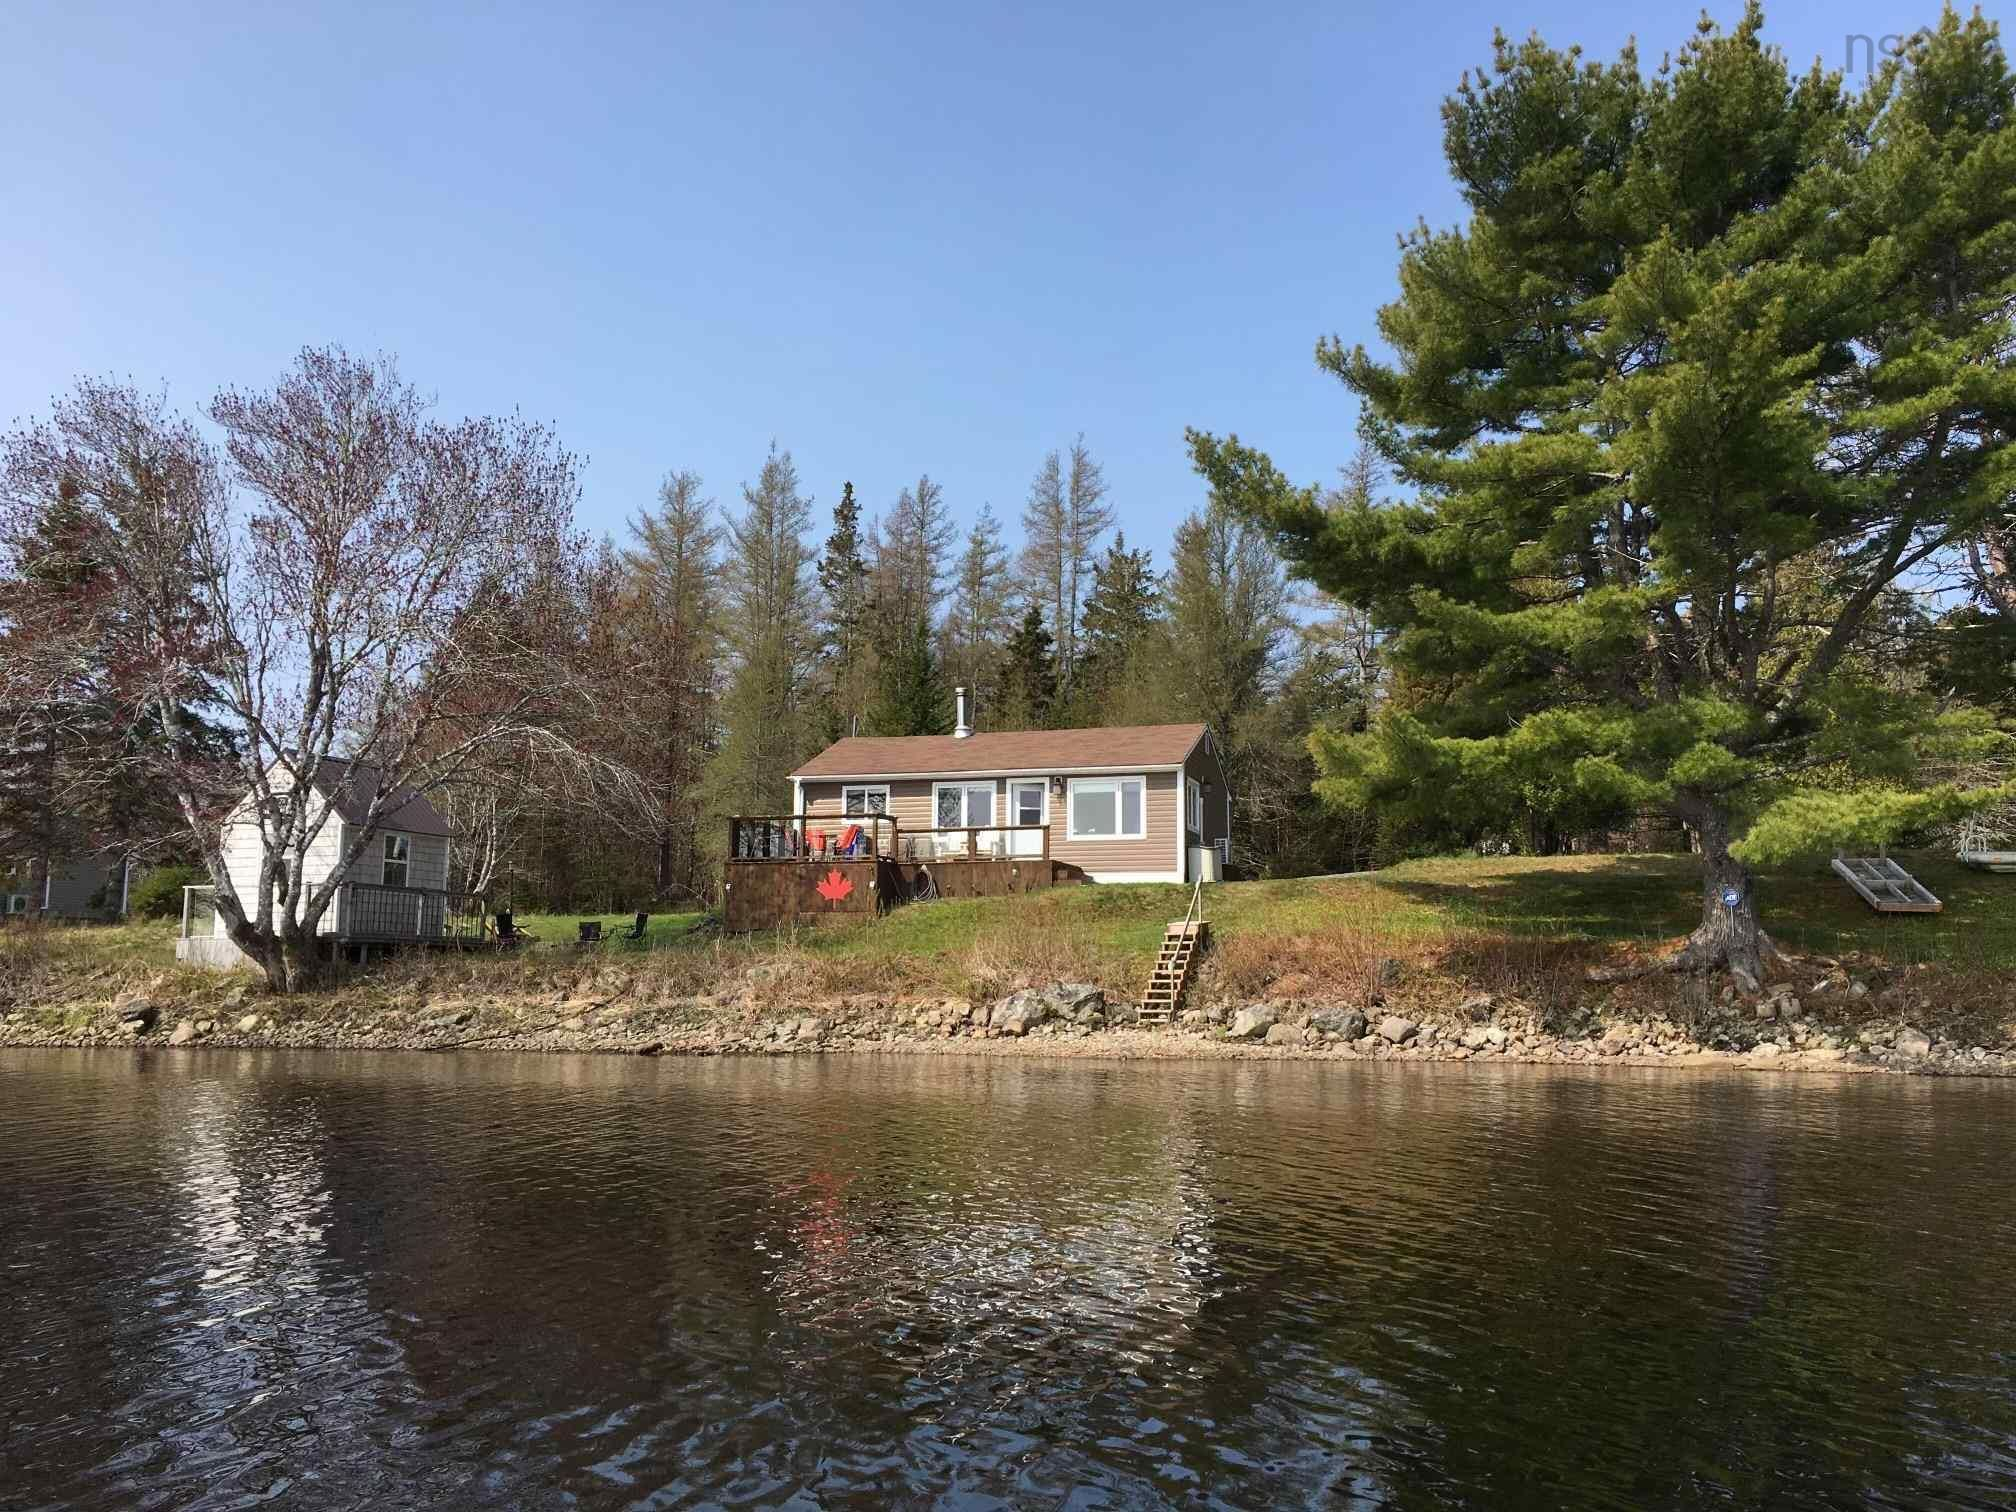 Main Photo: 53 Propeller Road in Eden Lake: 108-Rural Pictou County Residential for sale (Northern Region)  : MLS®# 202120306